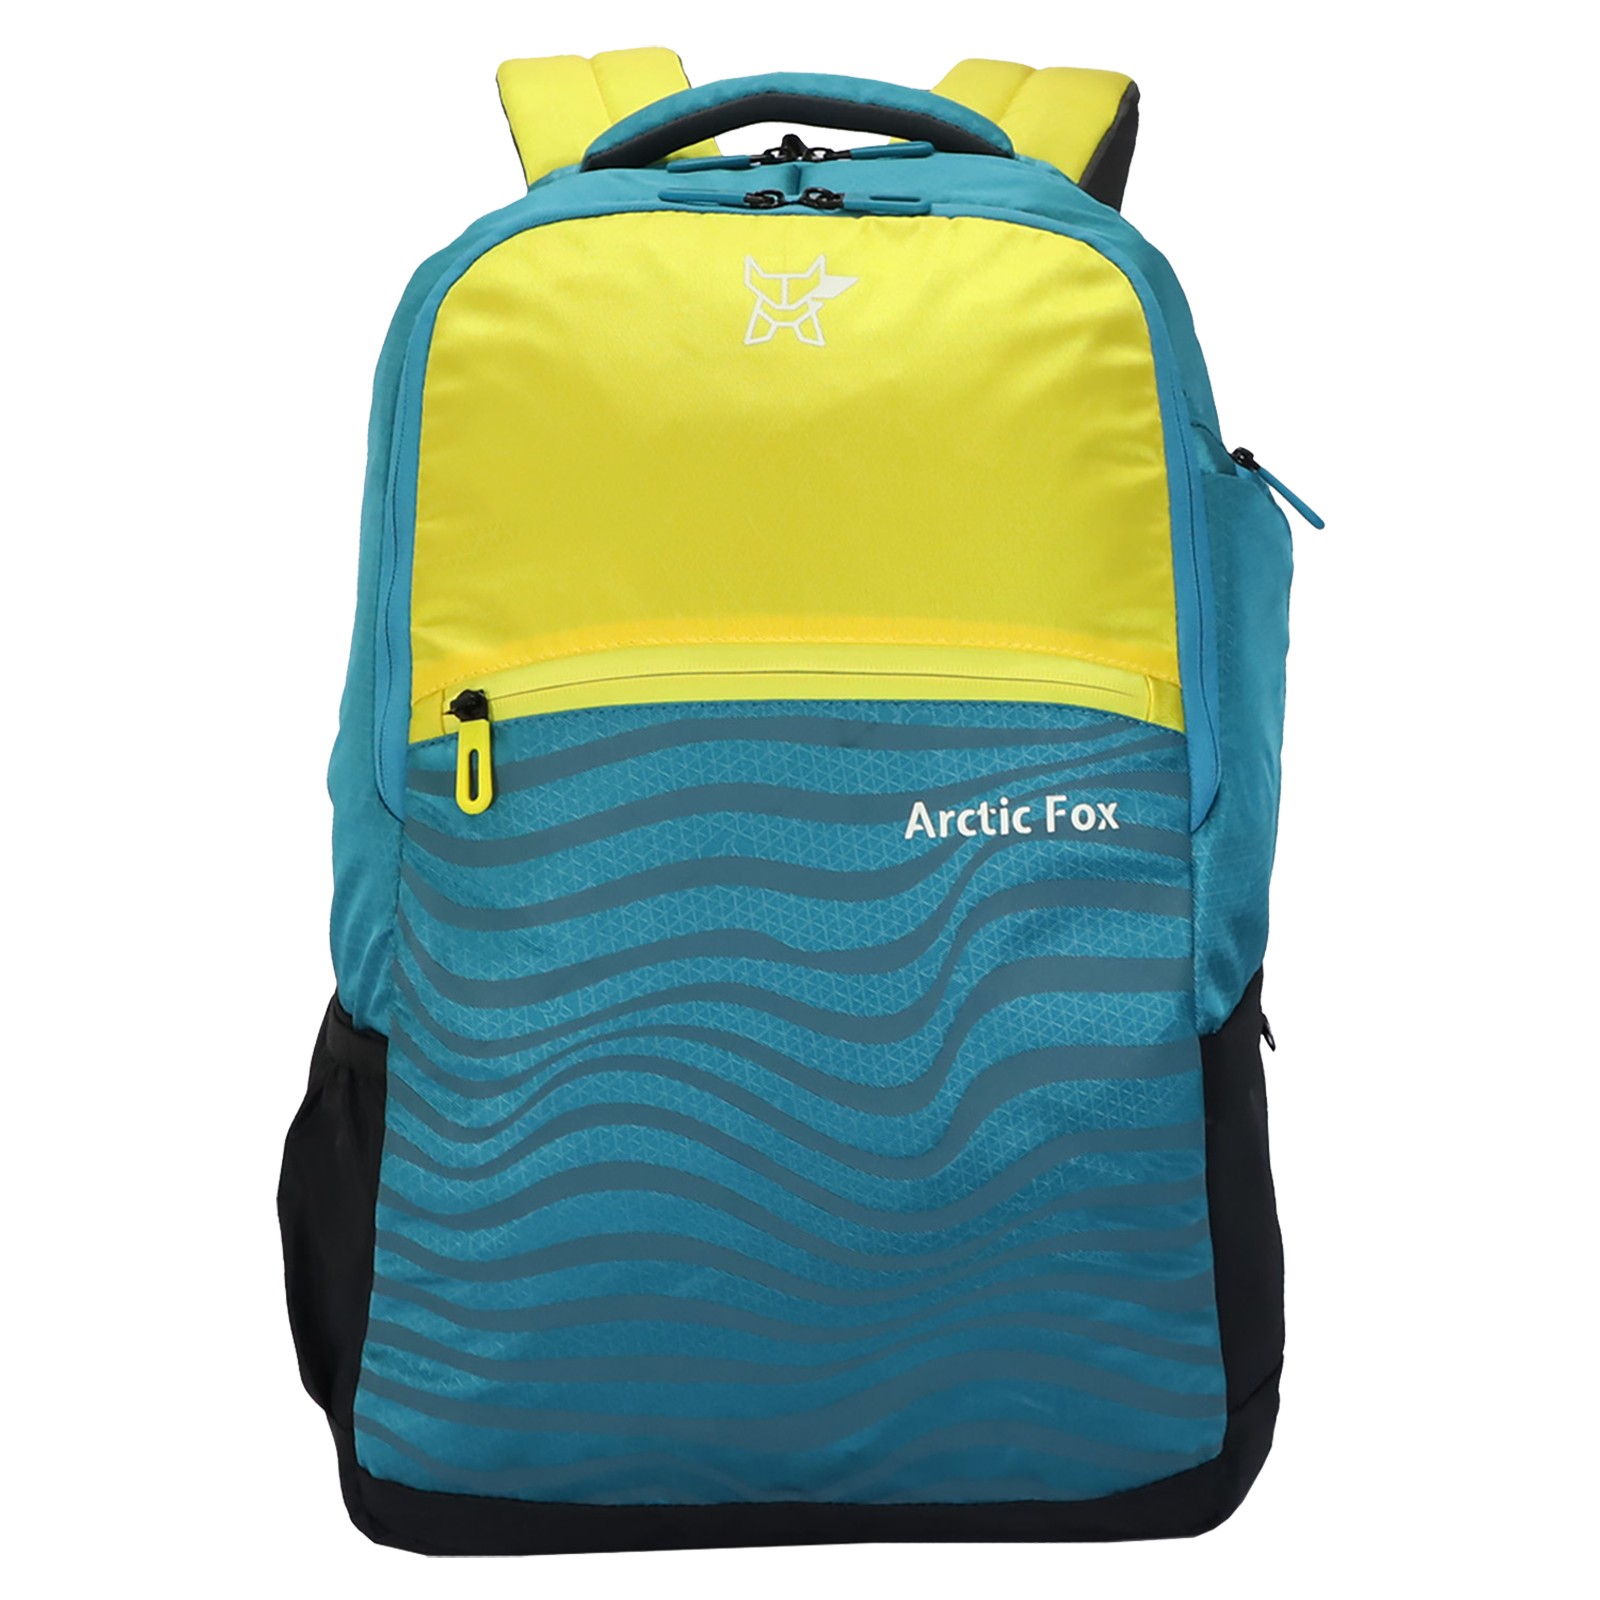 Arctic Fox Drift 32 Litres PU Coated Polyester Backpack (2 Spacious Compartments, FTEBPKVYLON065032, Vibrant Yellow)_1